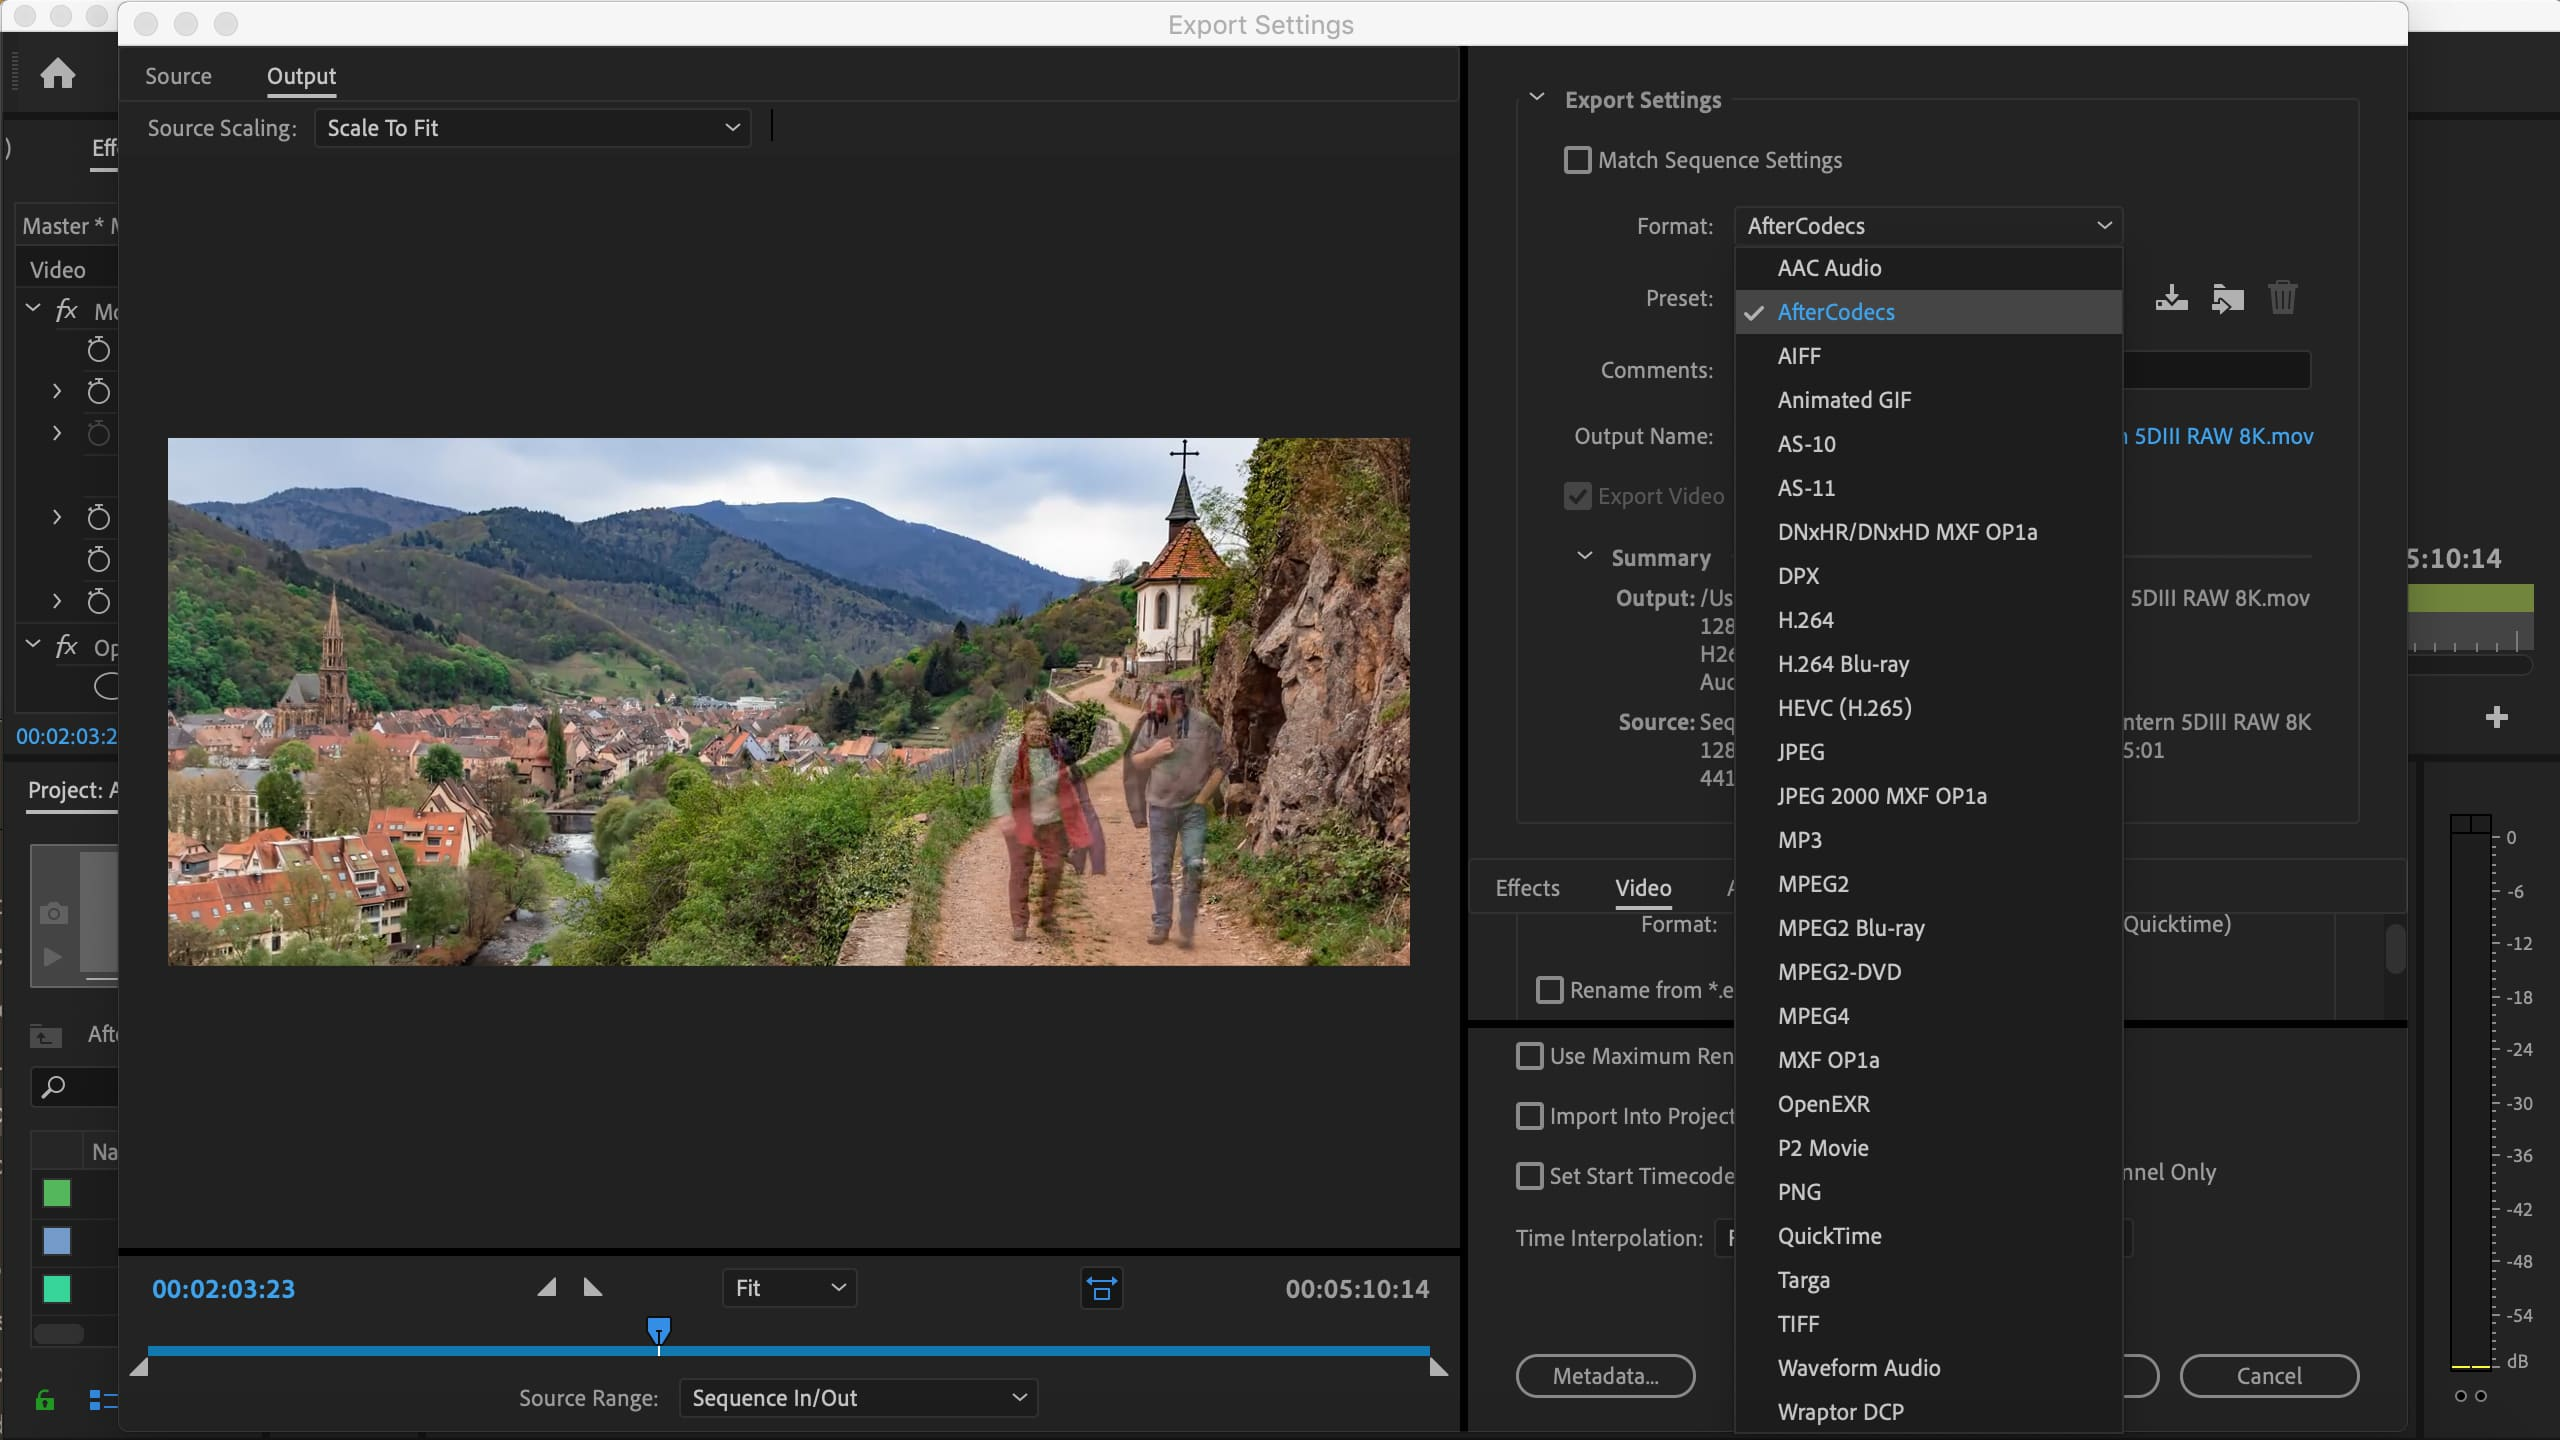 AfterCodecs for Adobe Premiere Pro and Adobe Media Encoder on Mac OSX (Fast exporter plugin screenshot)